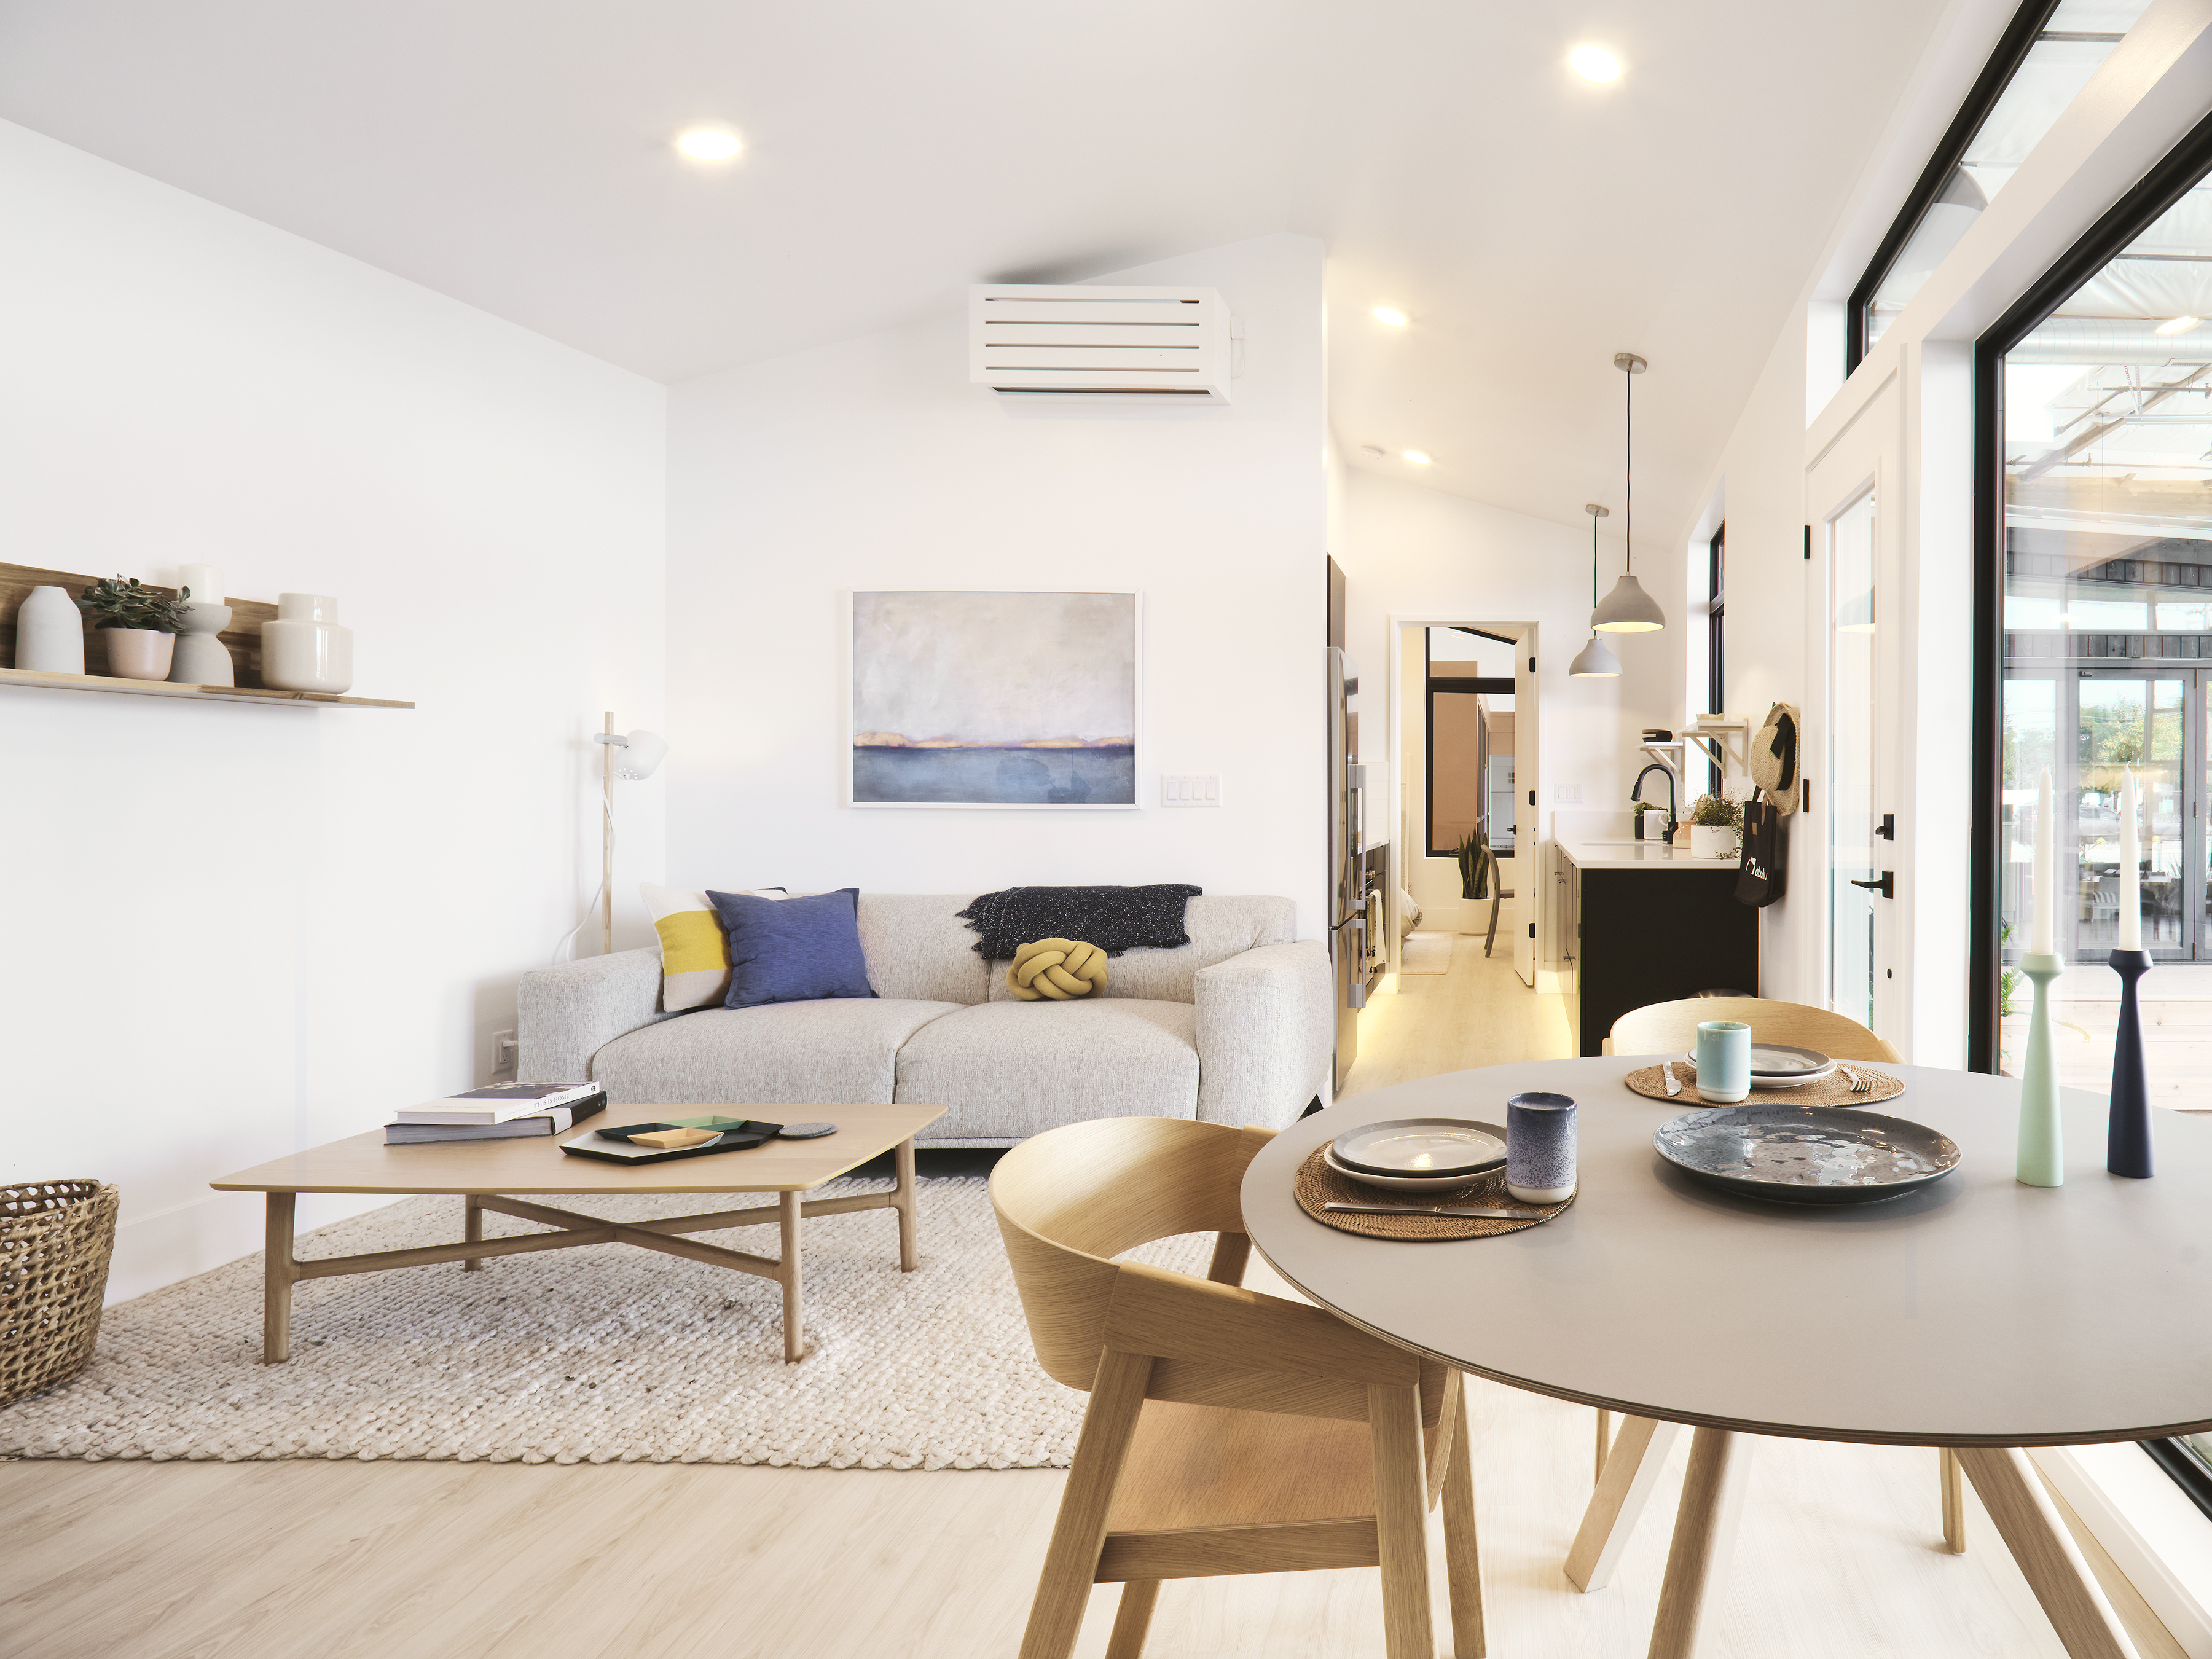 Now approved in LA, Abodu's backyard homes can now go from contract to completion in as little as 30 days